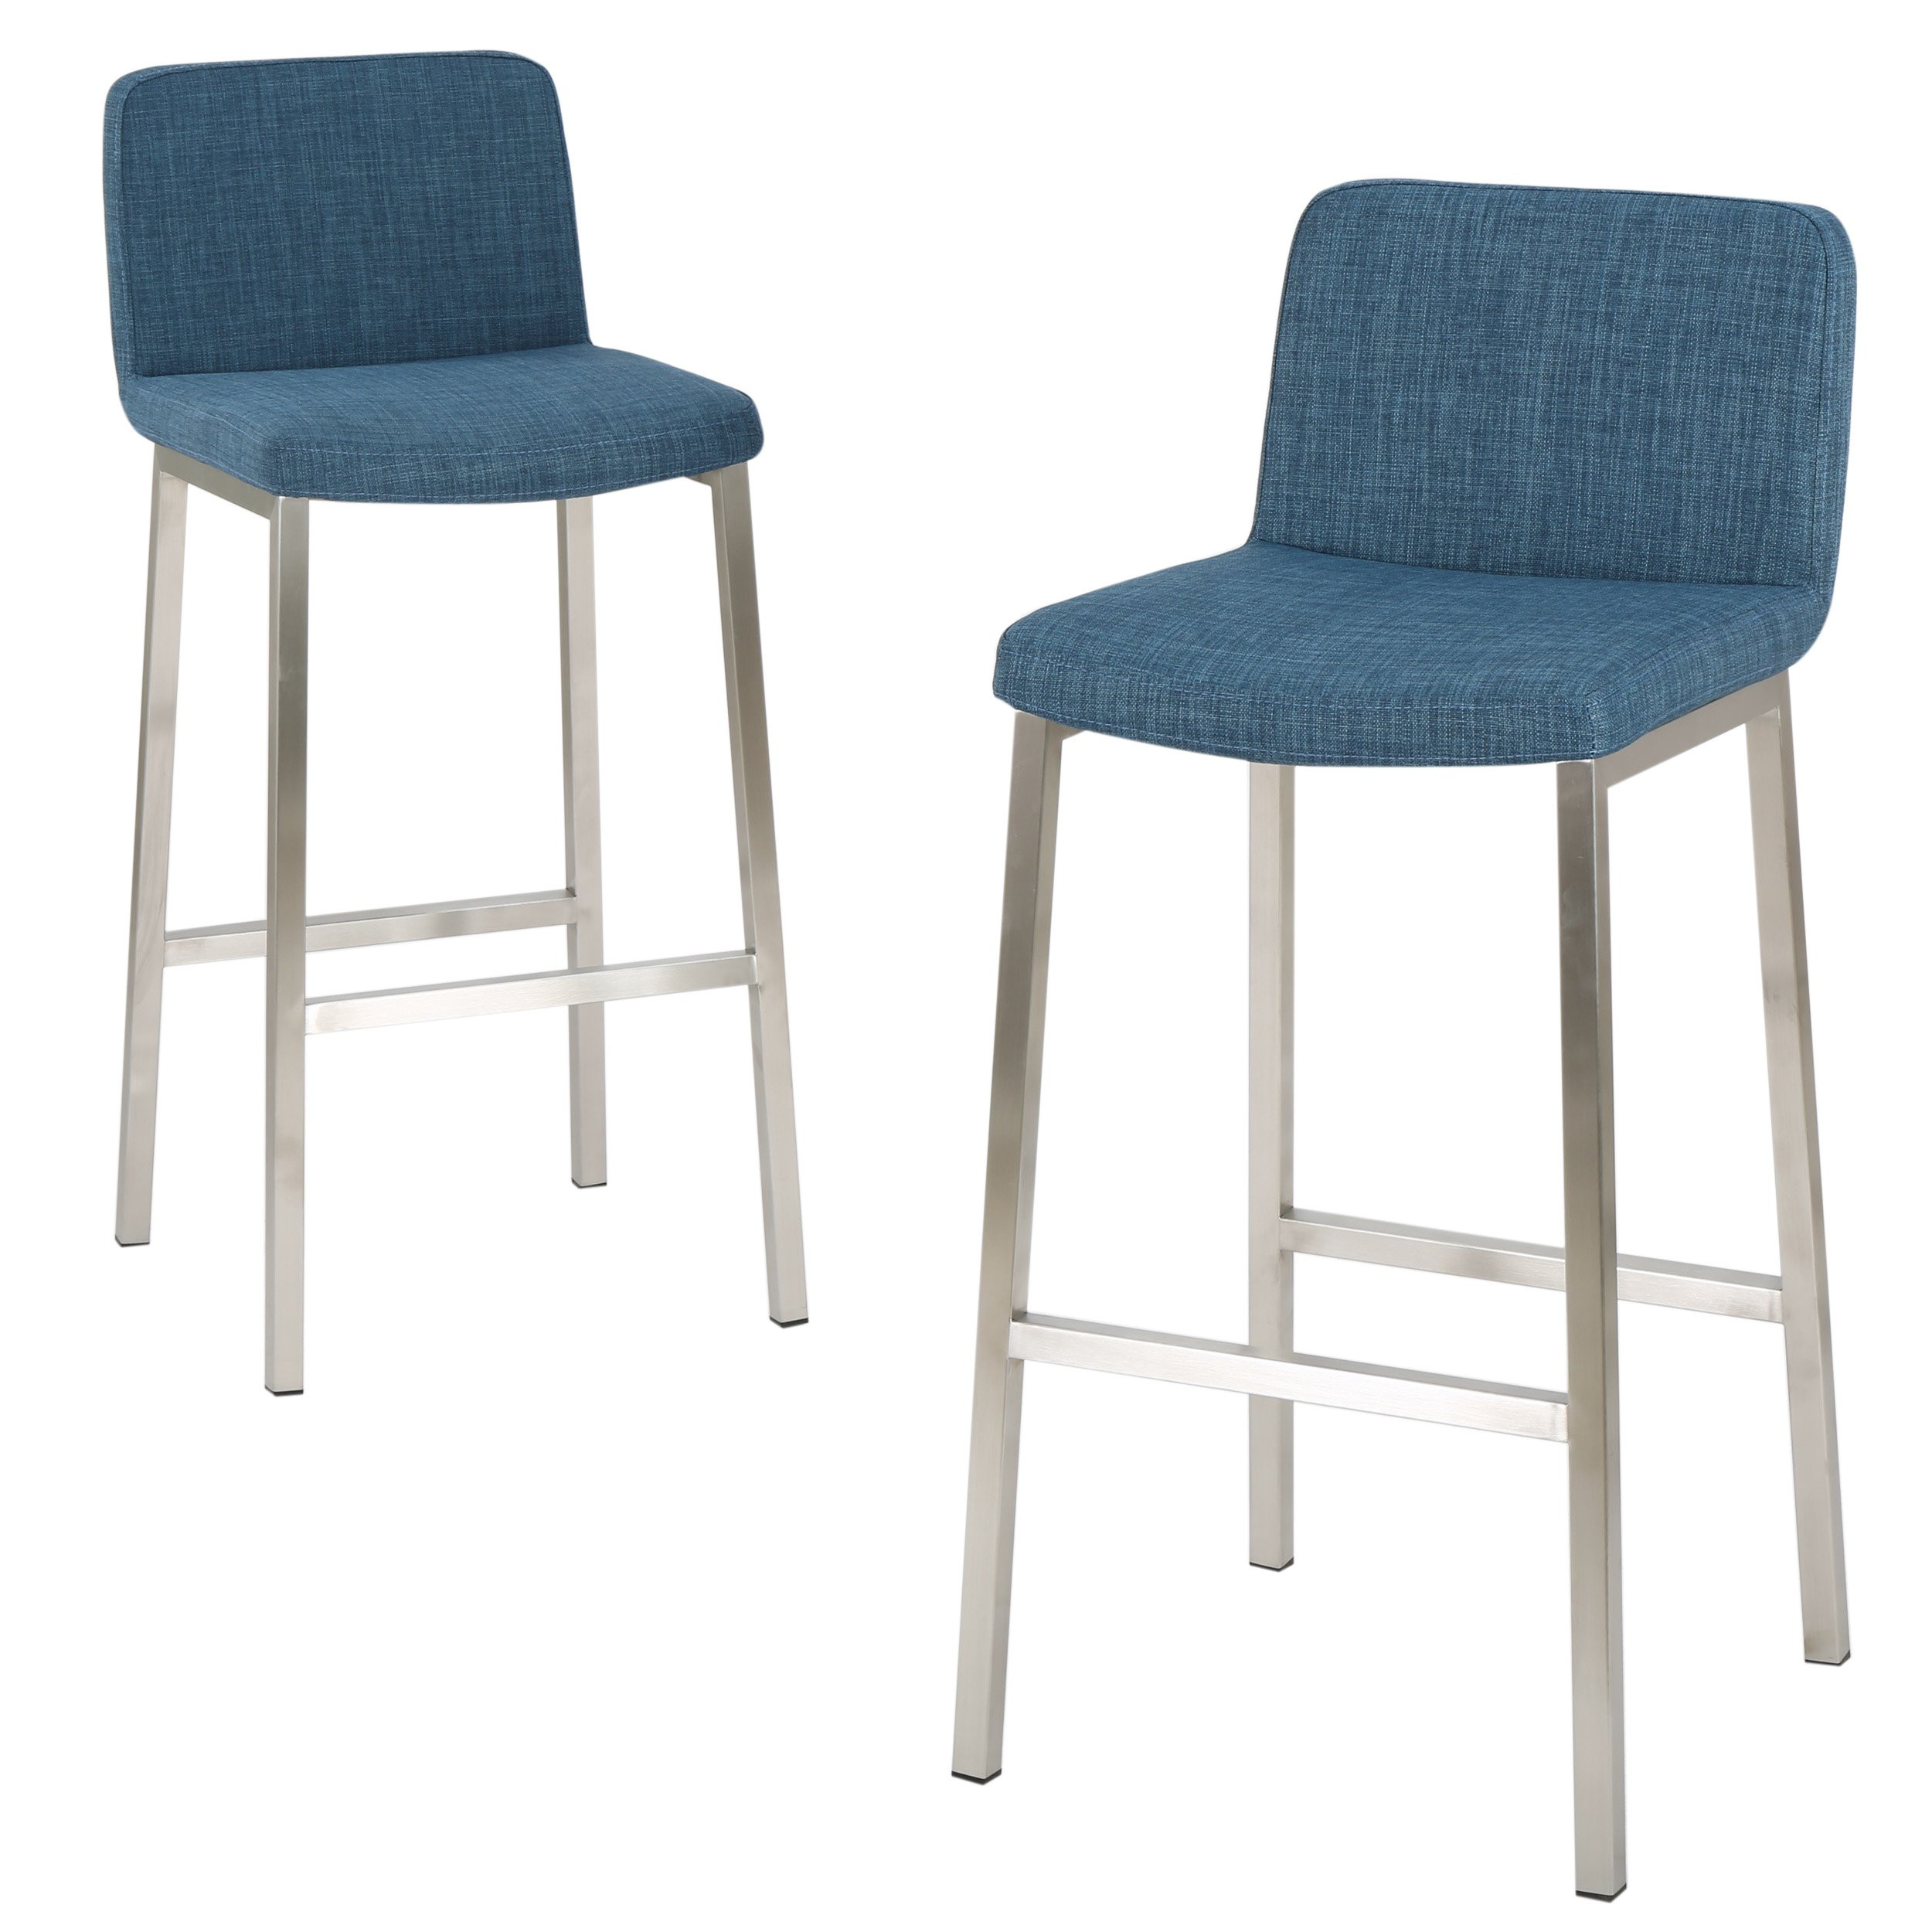 Denise Austin Home Fantasia Fabric Barstool (Set o...